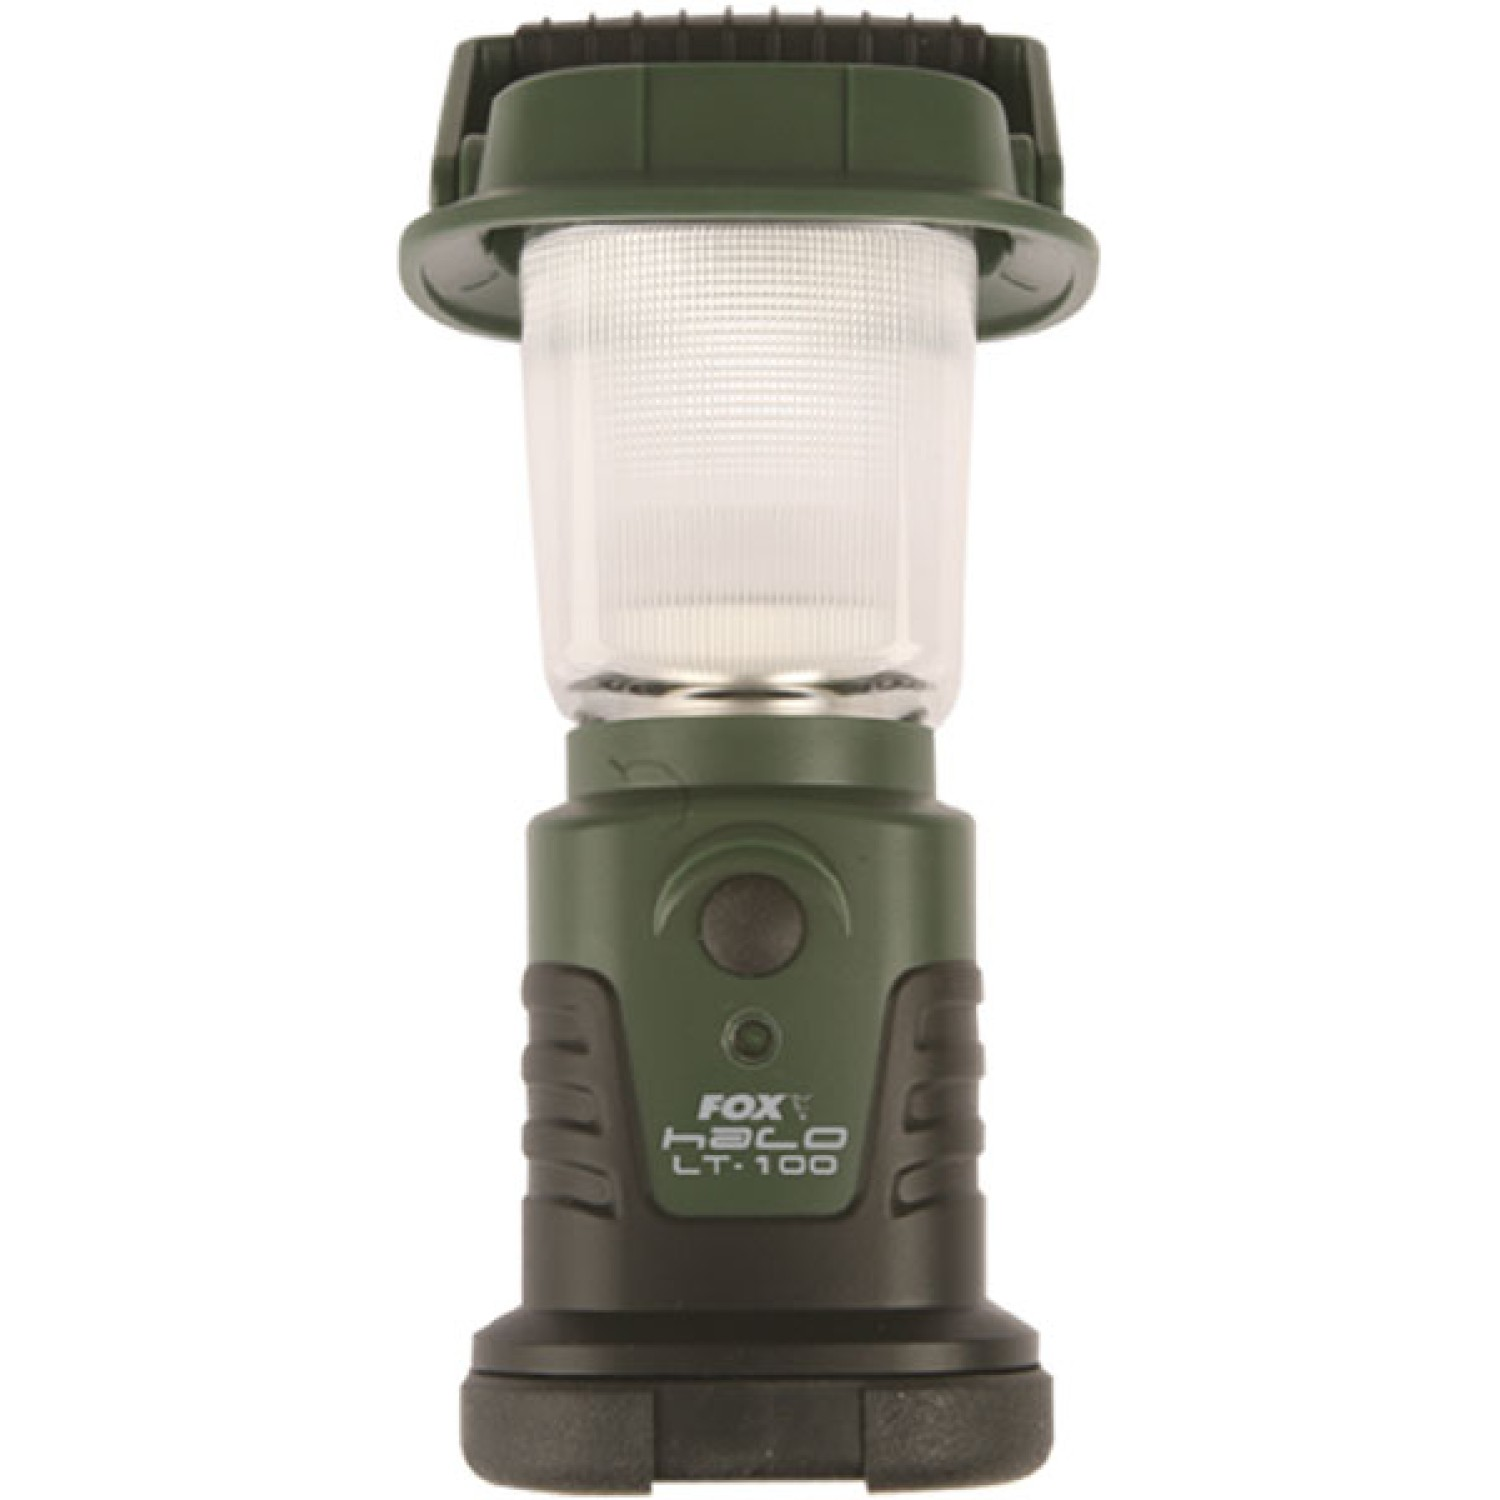 FOX Halo LT100 Lantern